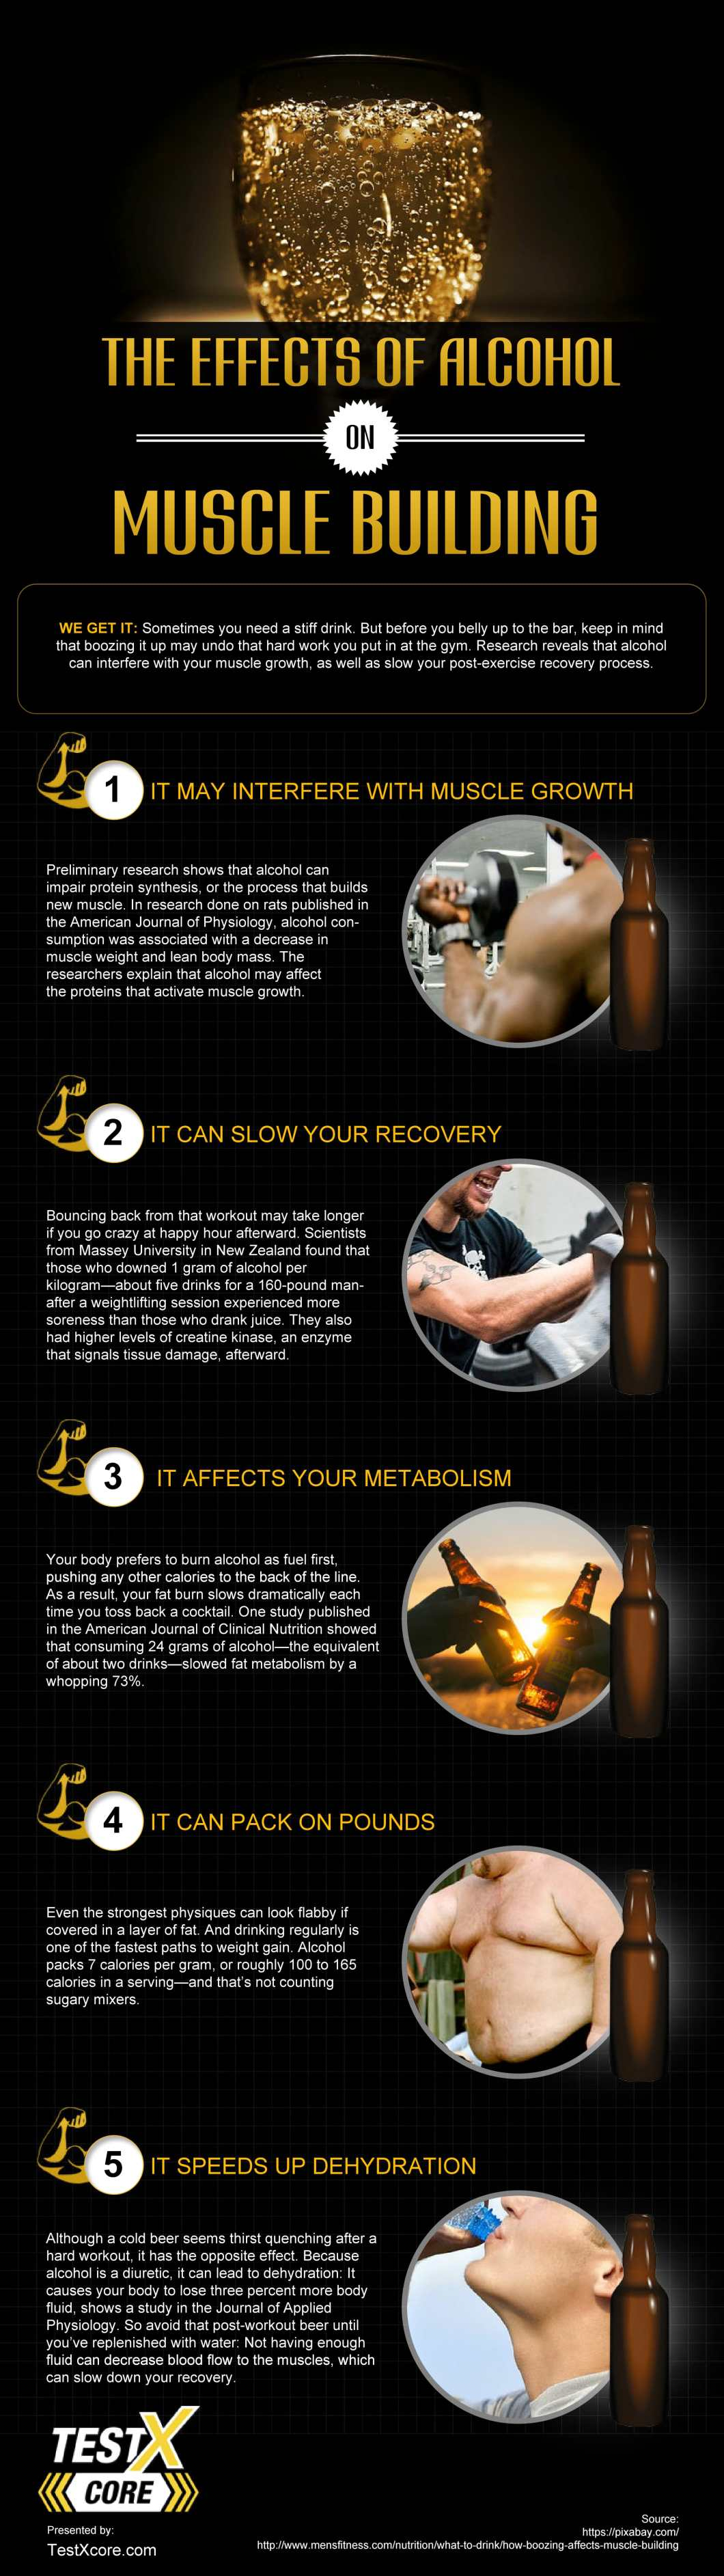 Building Muscle? Cut Out The Alcohol Completely! - Infographic